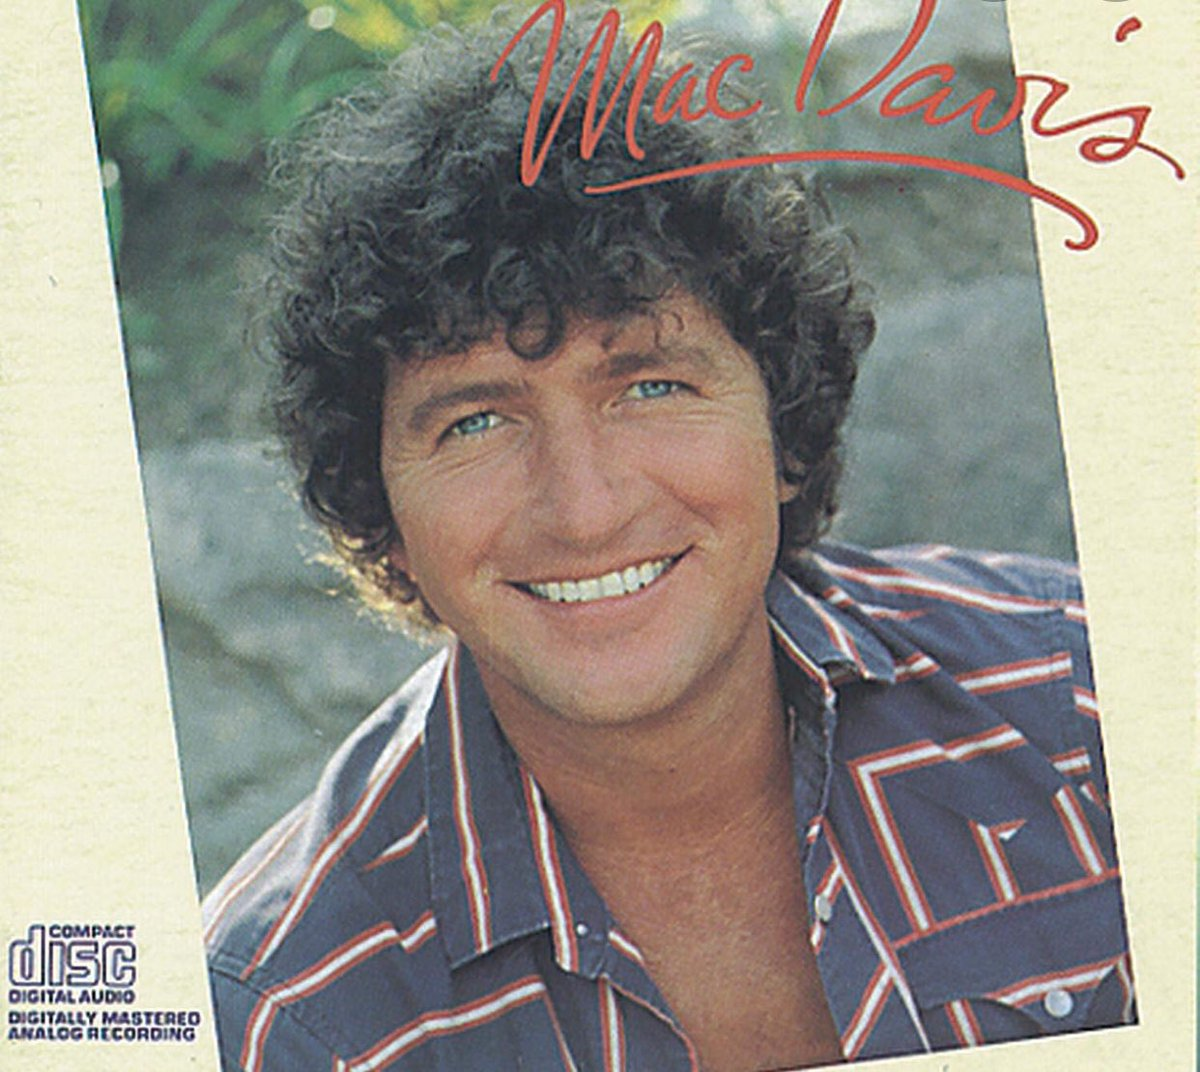 It's a sad day to wake and hear that Mac Davis has left us. My first celebrity songwriter crush and sing alongs with my dad... he has gifted some special memories in the rear view mirror. https://t.co/b753cxH9lc